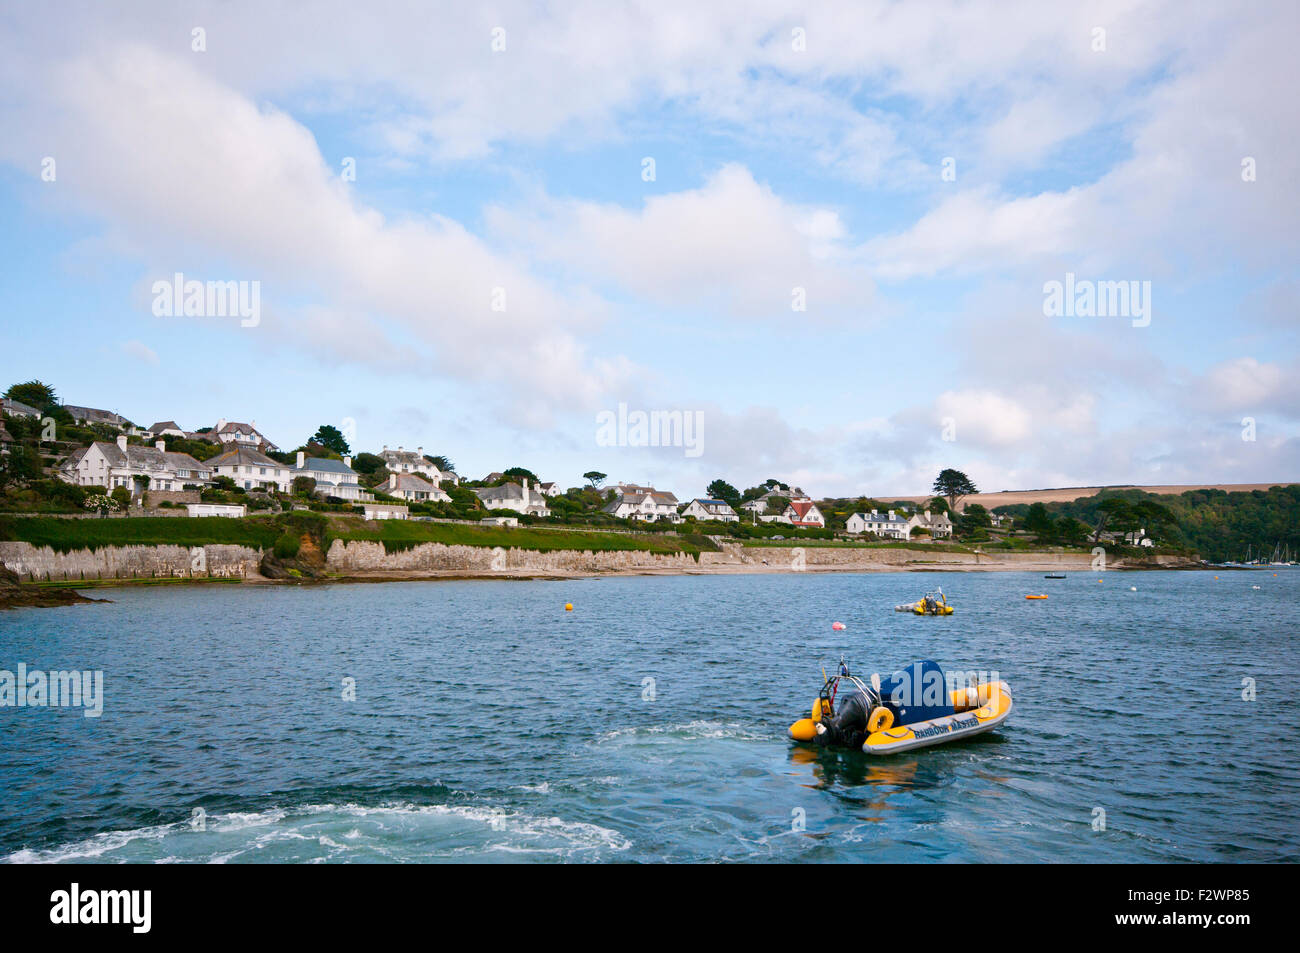 St Mawes Cornwall England UK Photo Stock